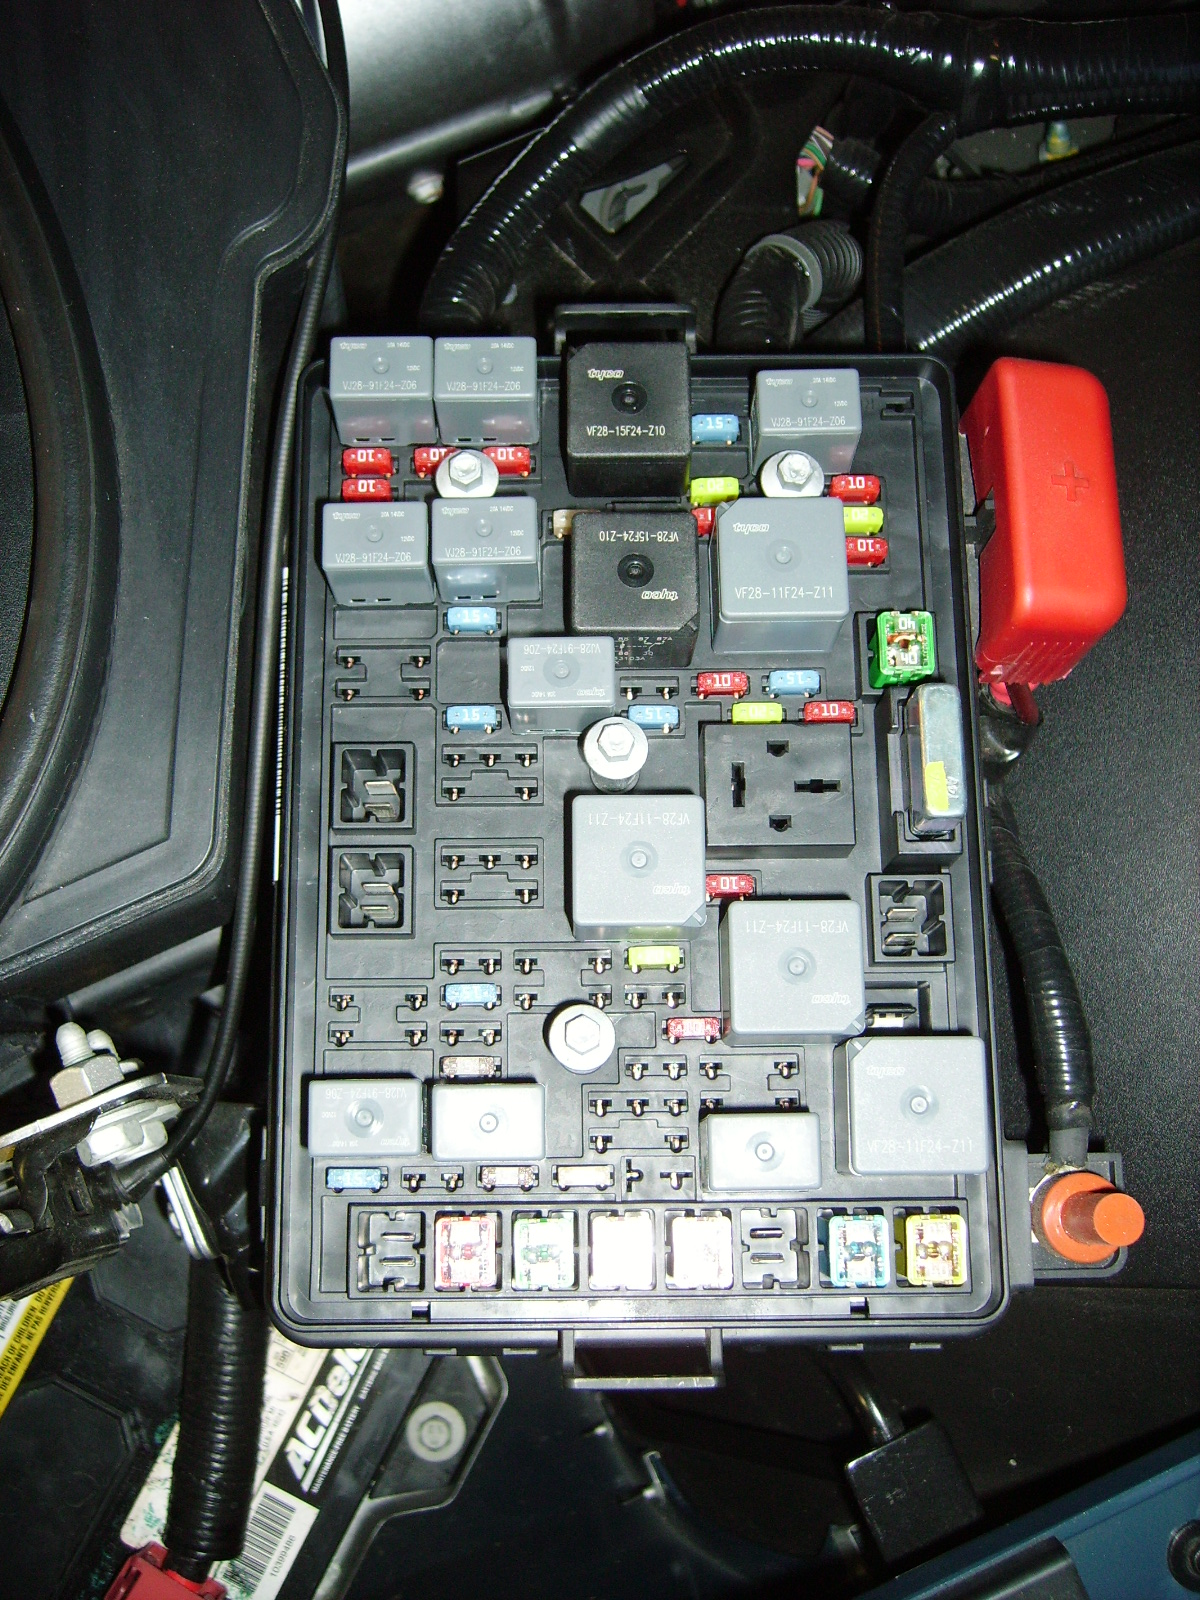 40354d1305120997 reverse light out fuse box under hood reverse light out? saturn sky forums saturn sky forum jeep patriot fuse box location at reclaimingppi.co